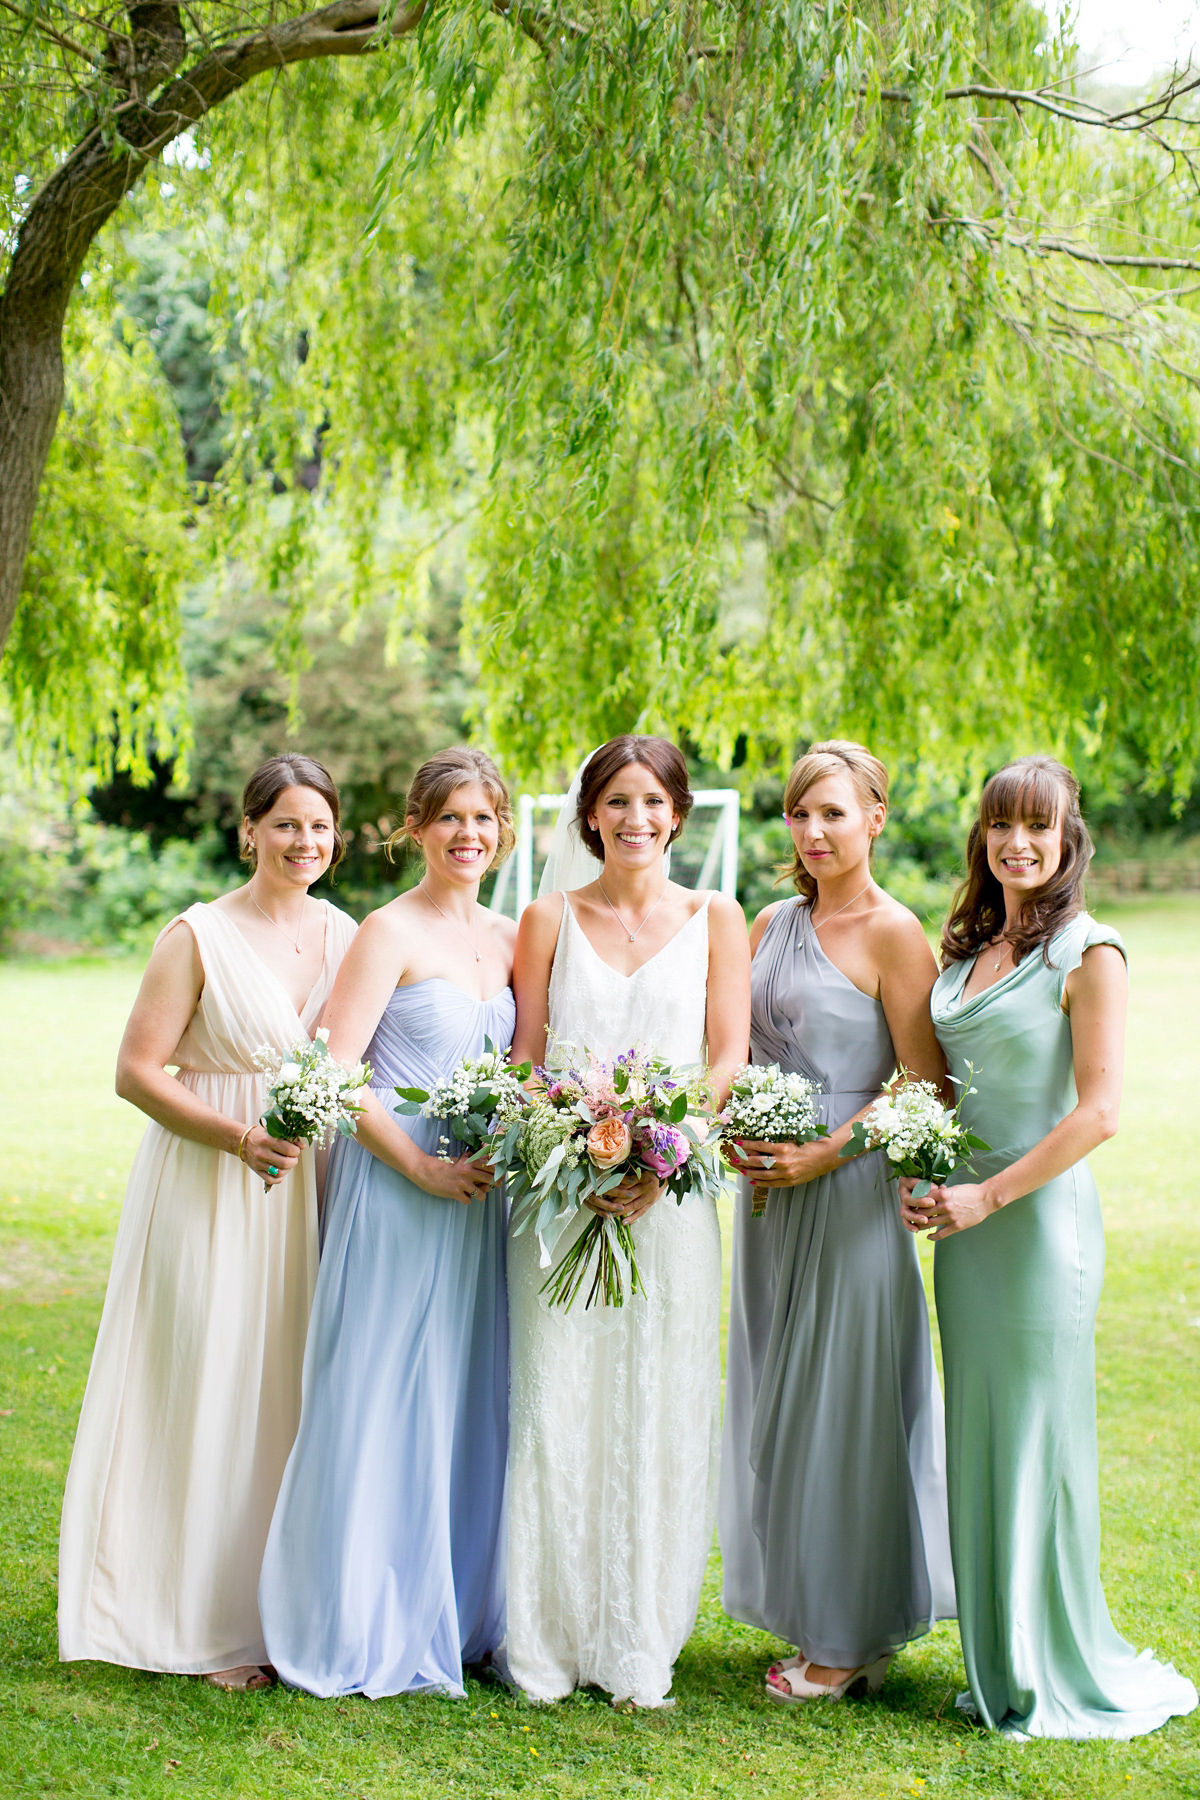 A Nature Inspired Wedding with a Limor Rosen Dress and Bridesmaids in Pastel Gowns